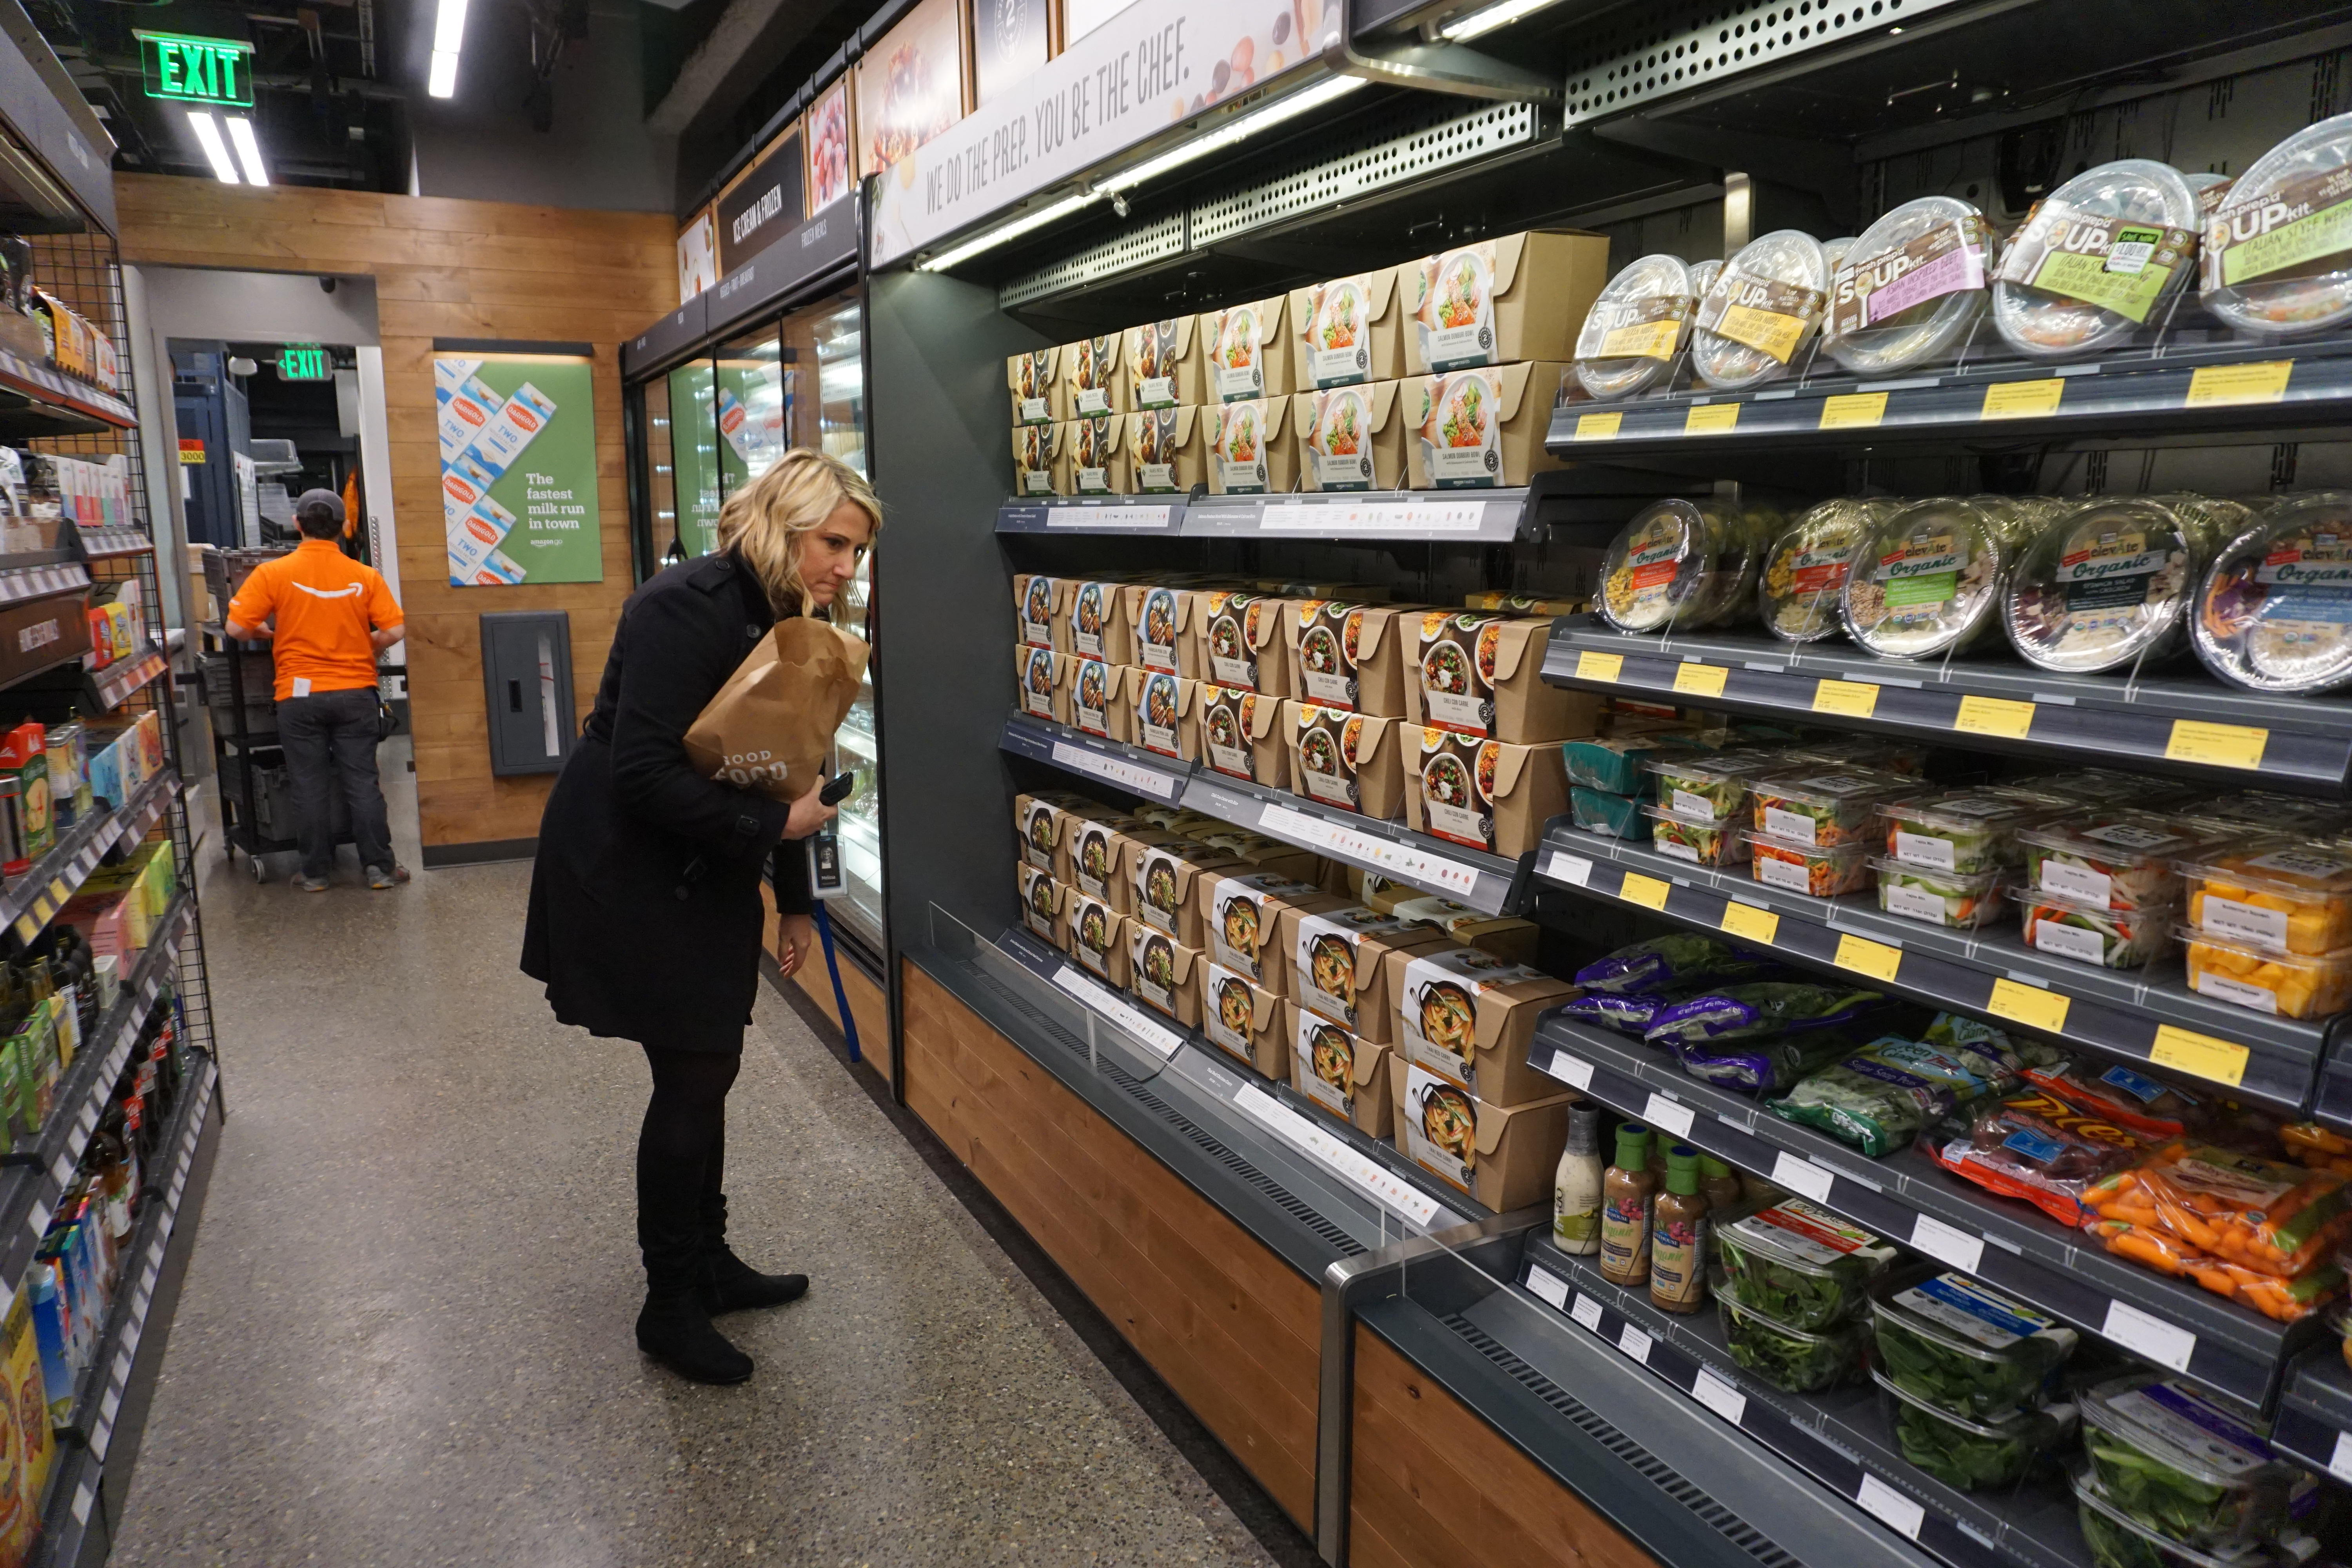 A customer examines Meal Kits in the Amazon Go store.